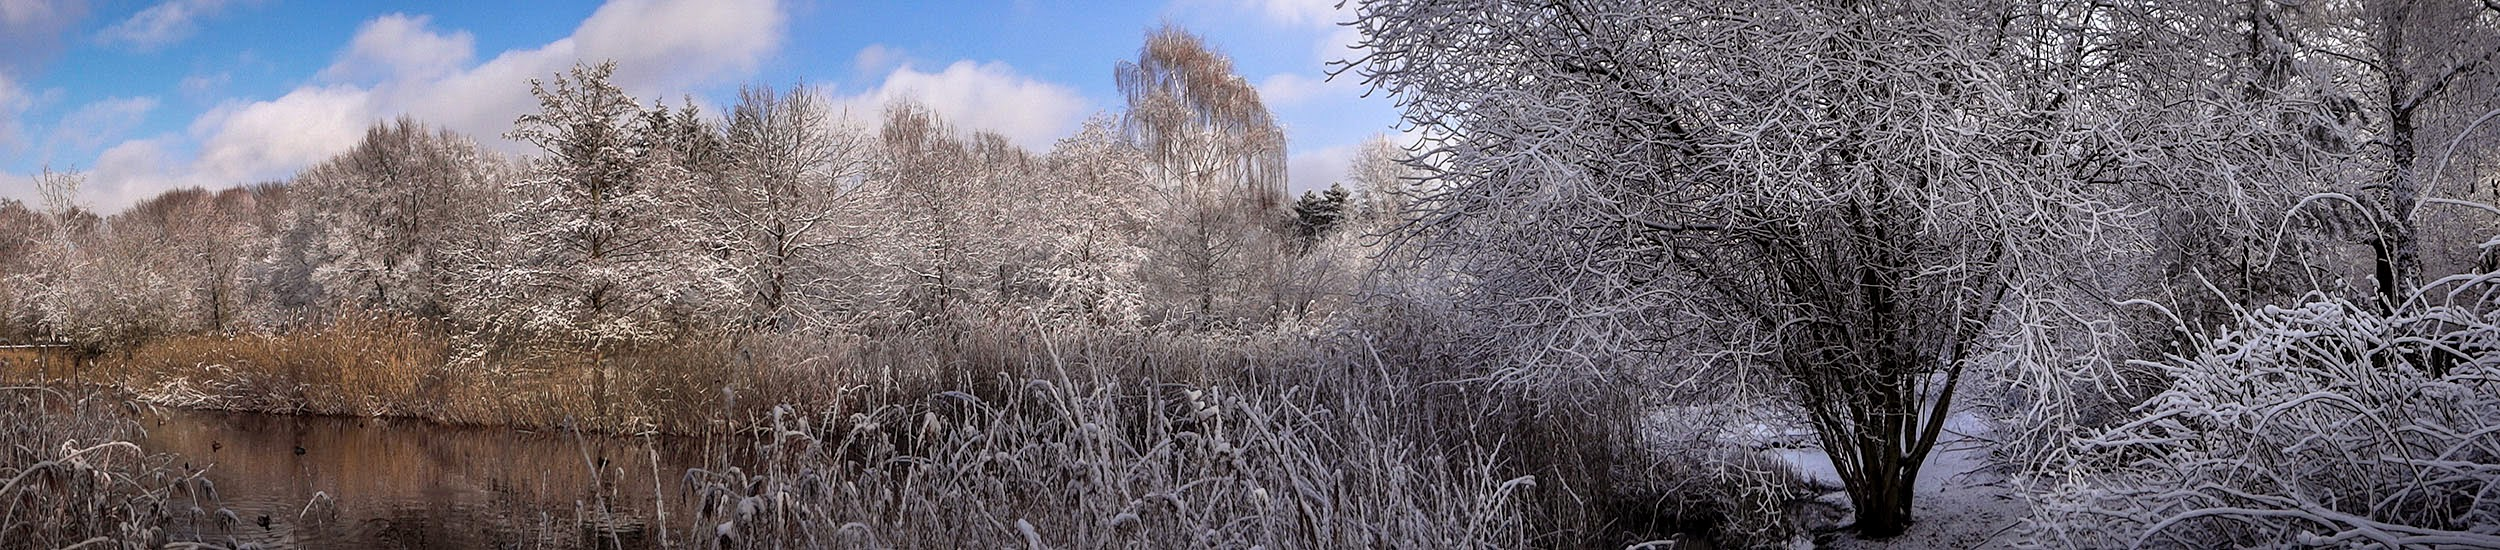 Hasenheide Winter Panorama 5